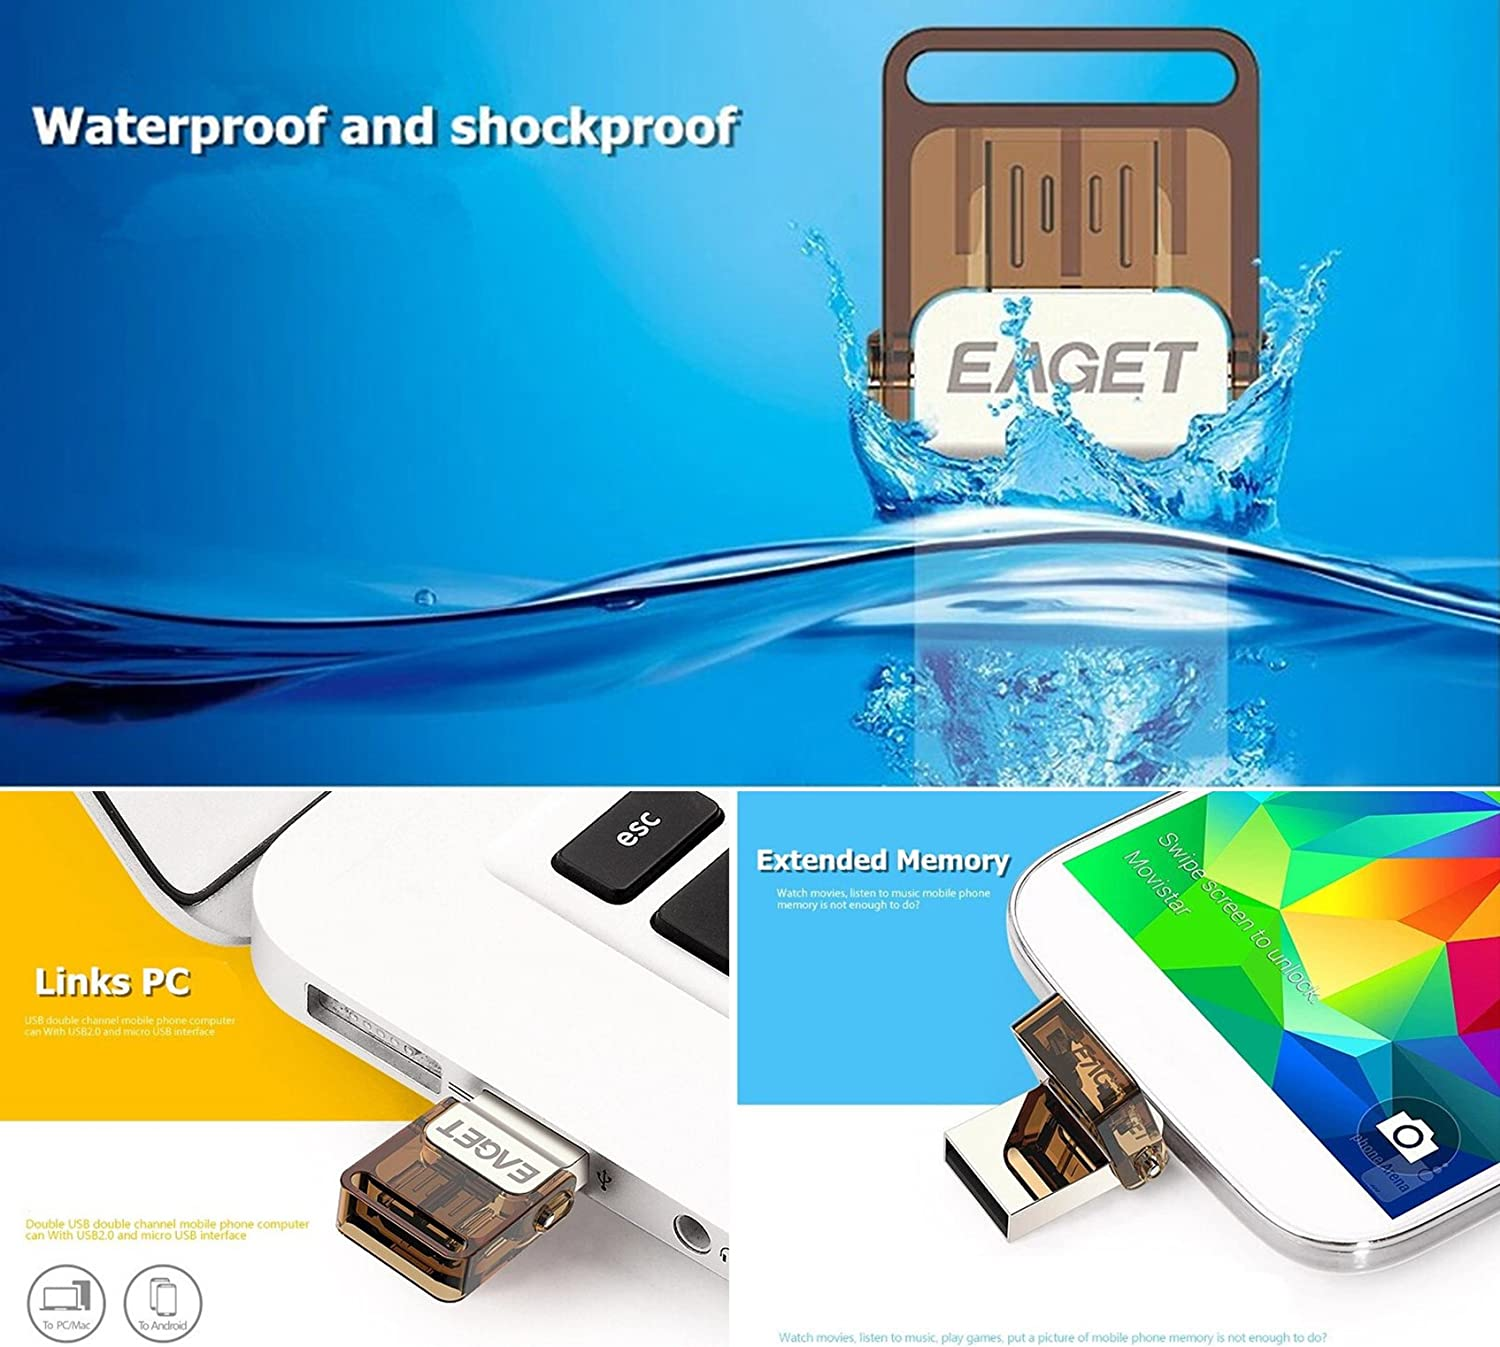 USB OTG Flash Drive Data traveler, EAGET V9 16GB Flash Memory Stick Metallic Dual Port Micro USB + USB2.0 Pen Drive with Compact Size Waterproof & ...